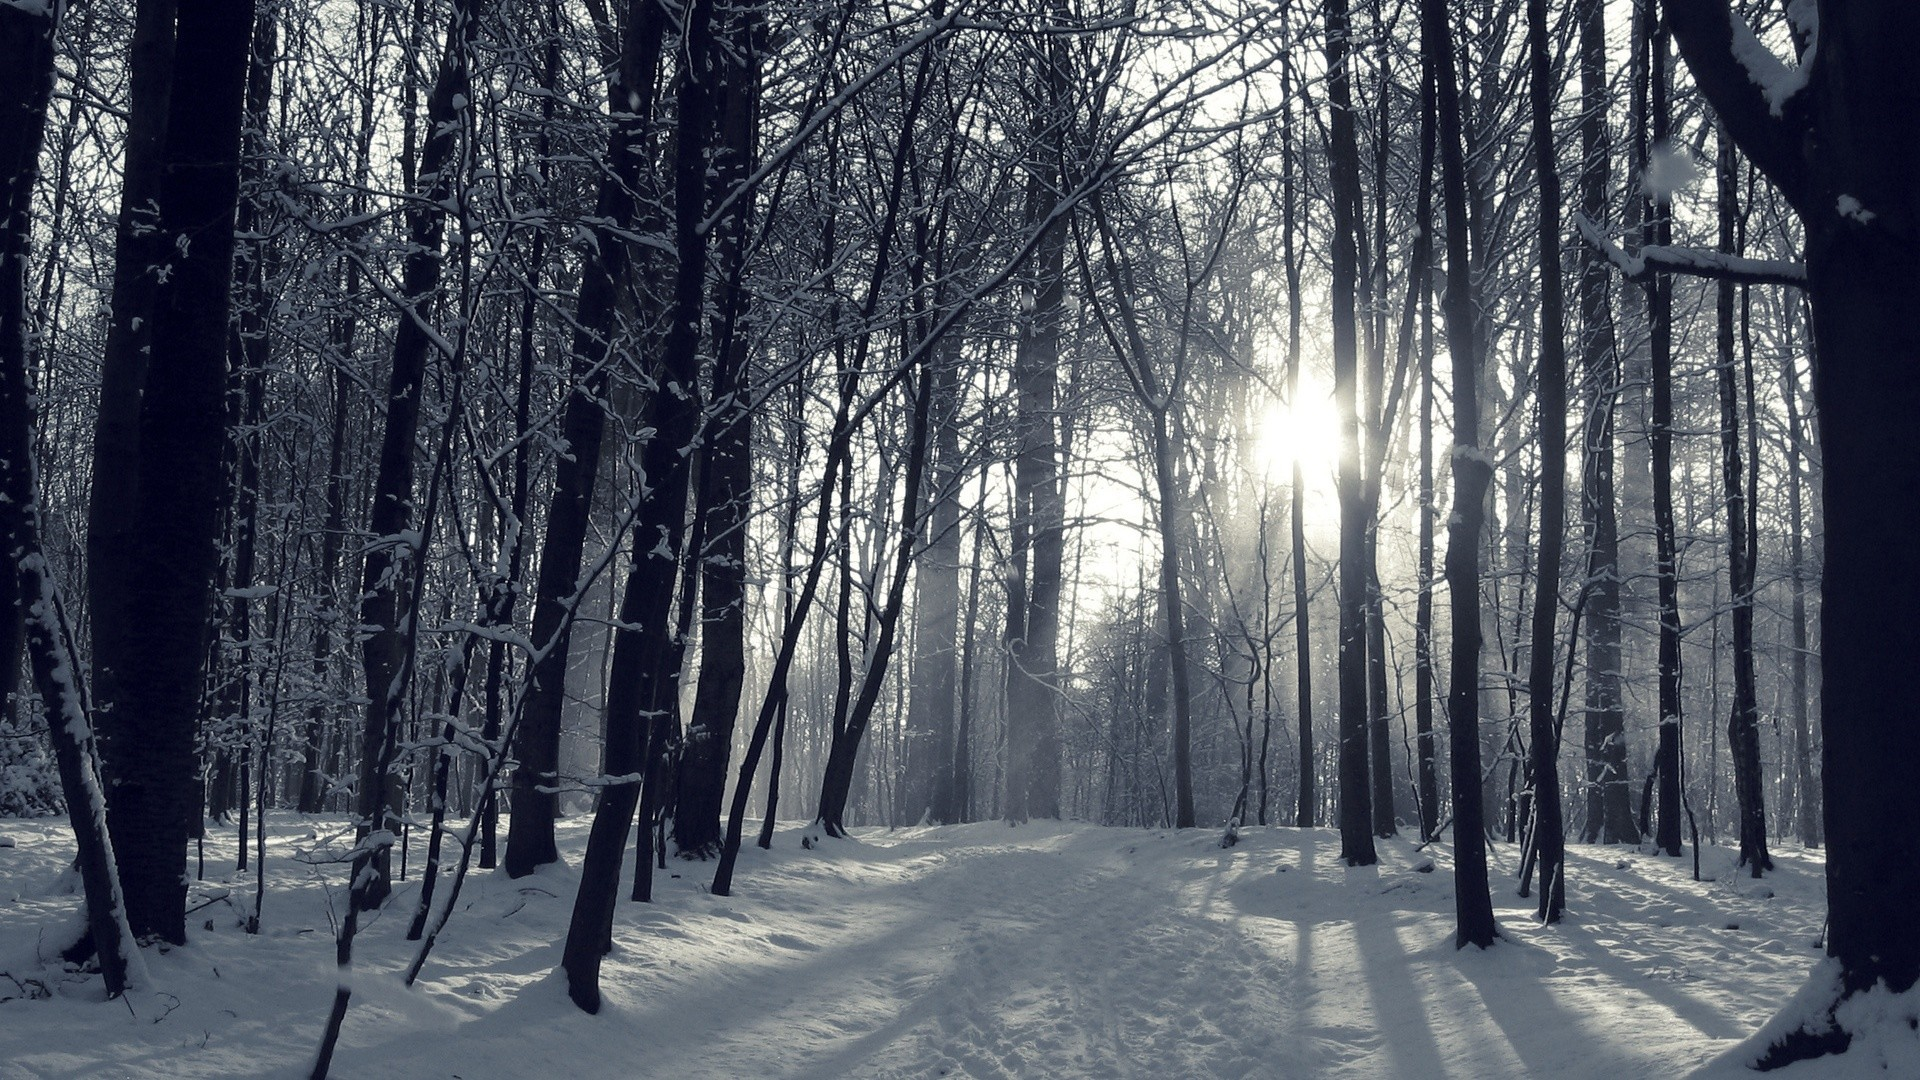 Snowy Winter Forest Wallpapers – – 1064989